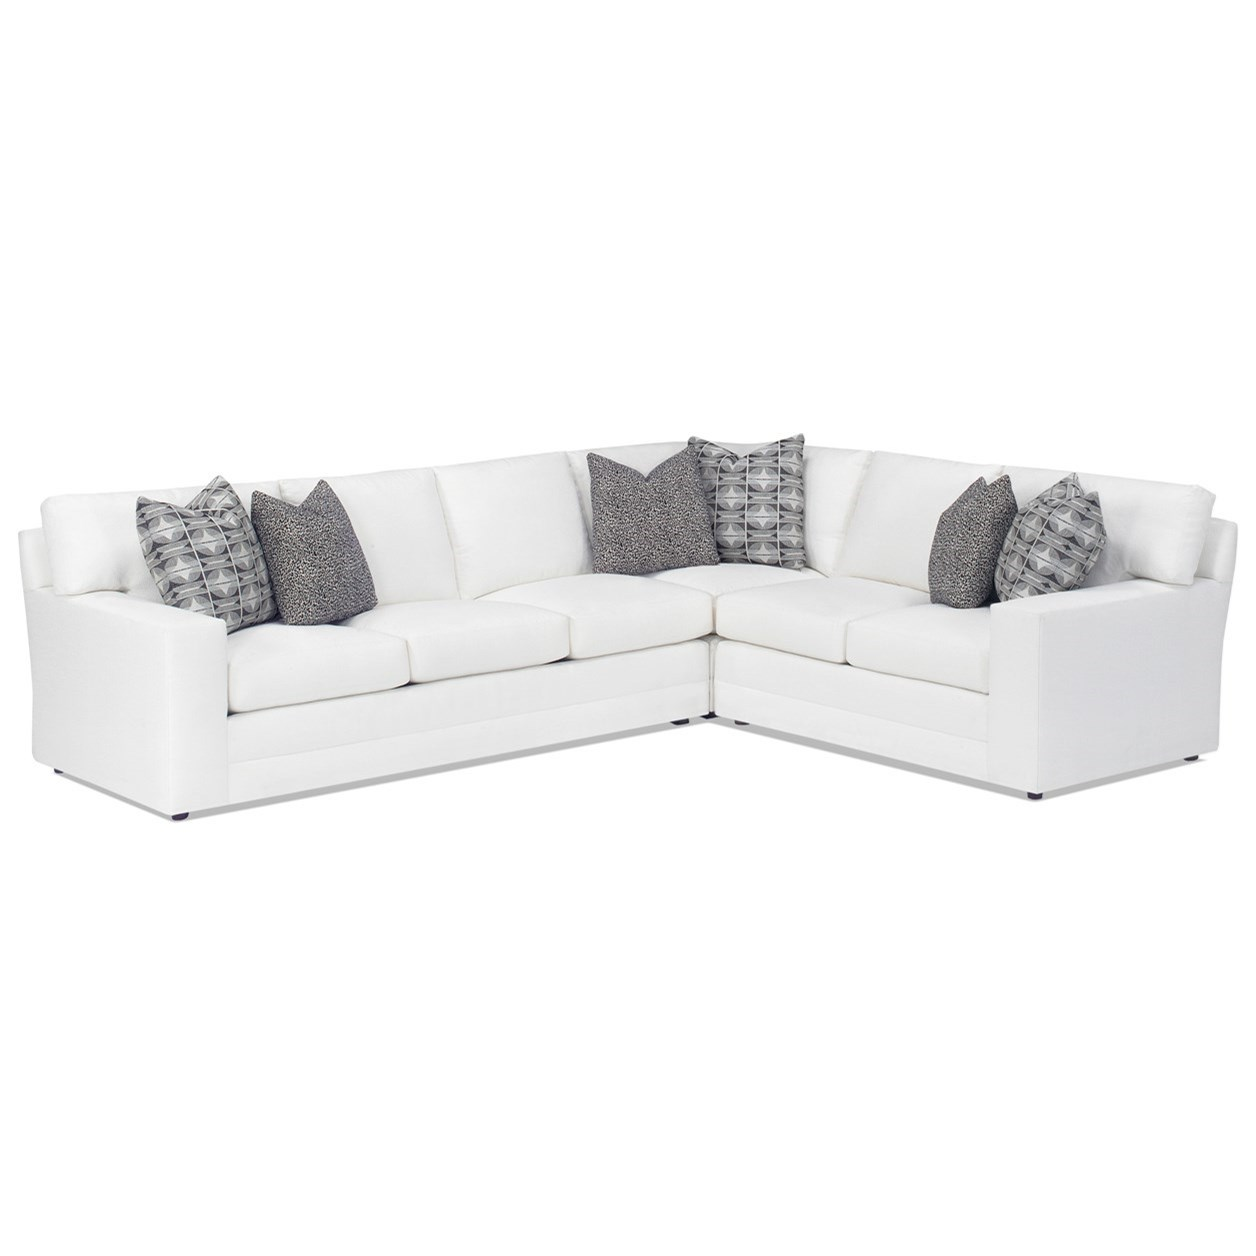 Personal Design Series Customizable Bedford 3 Pc Sectional Sofa by Lexington at Johnny Janosik